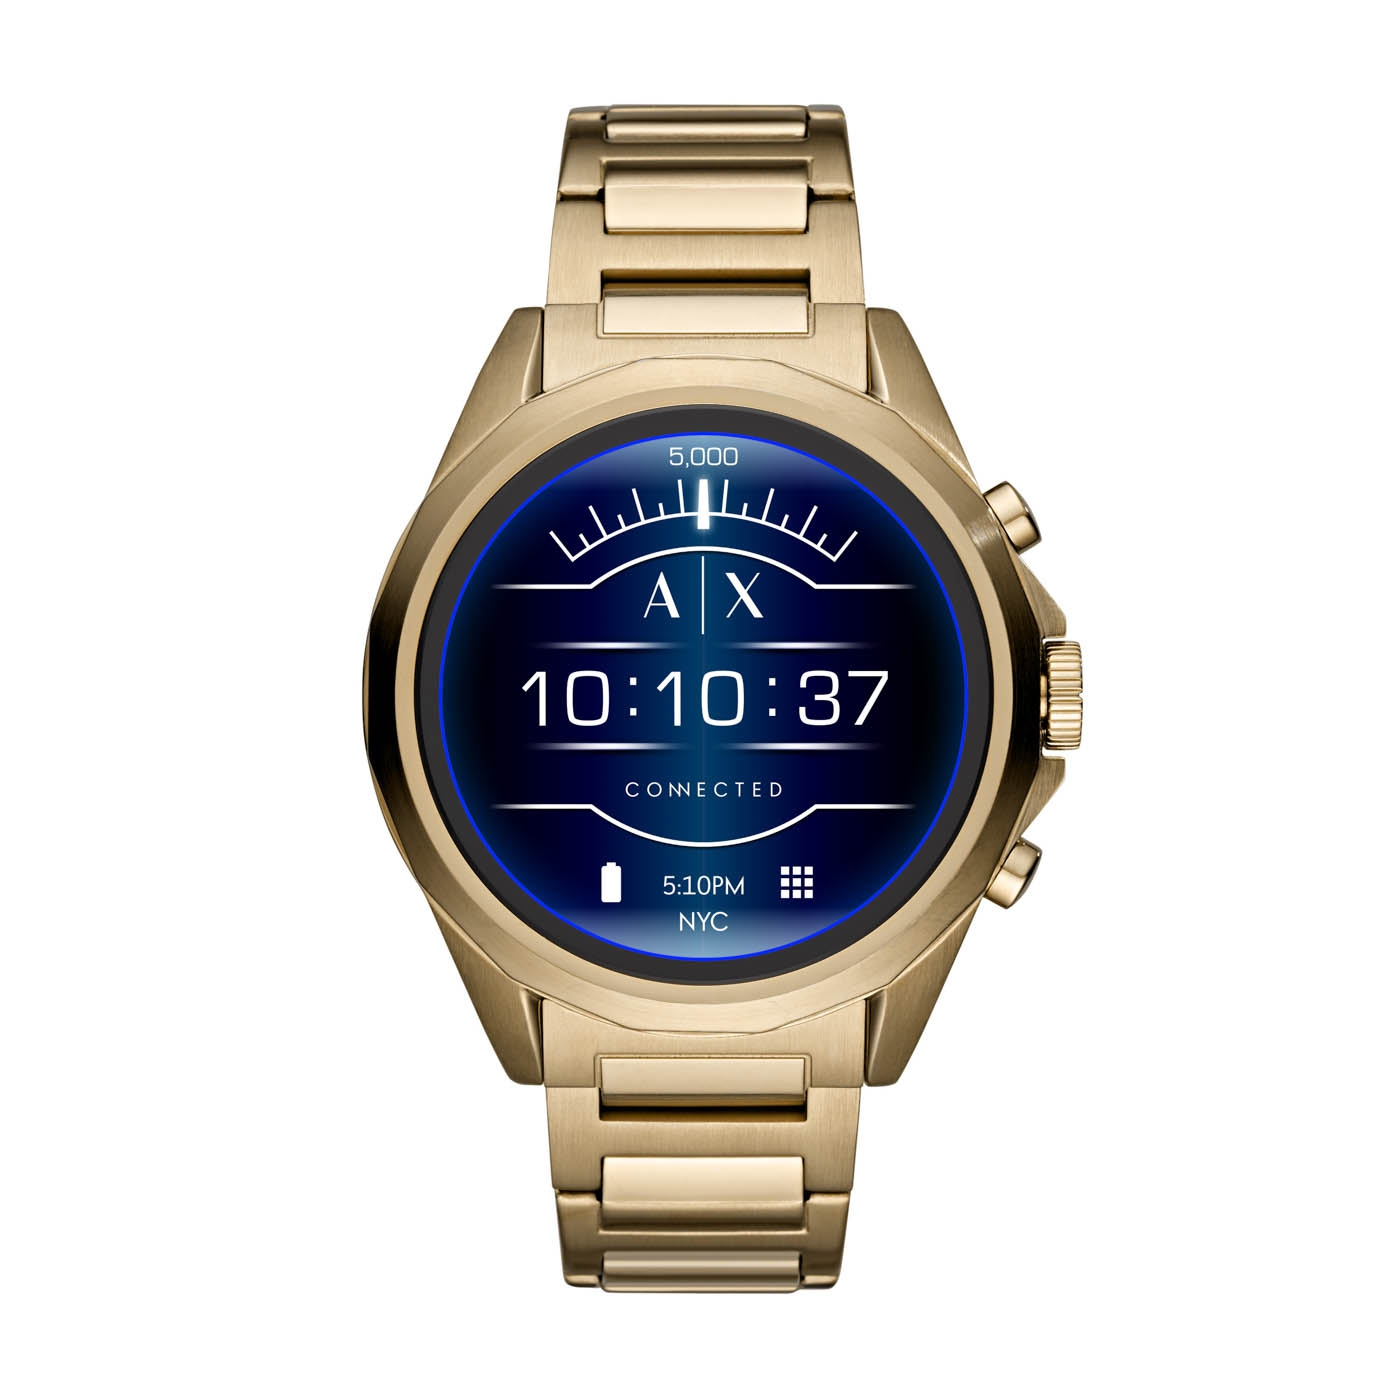 Immagine di Armani Exchange Connected Drexler Gen 4 Display Smartwatch AXT2001